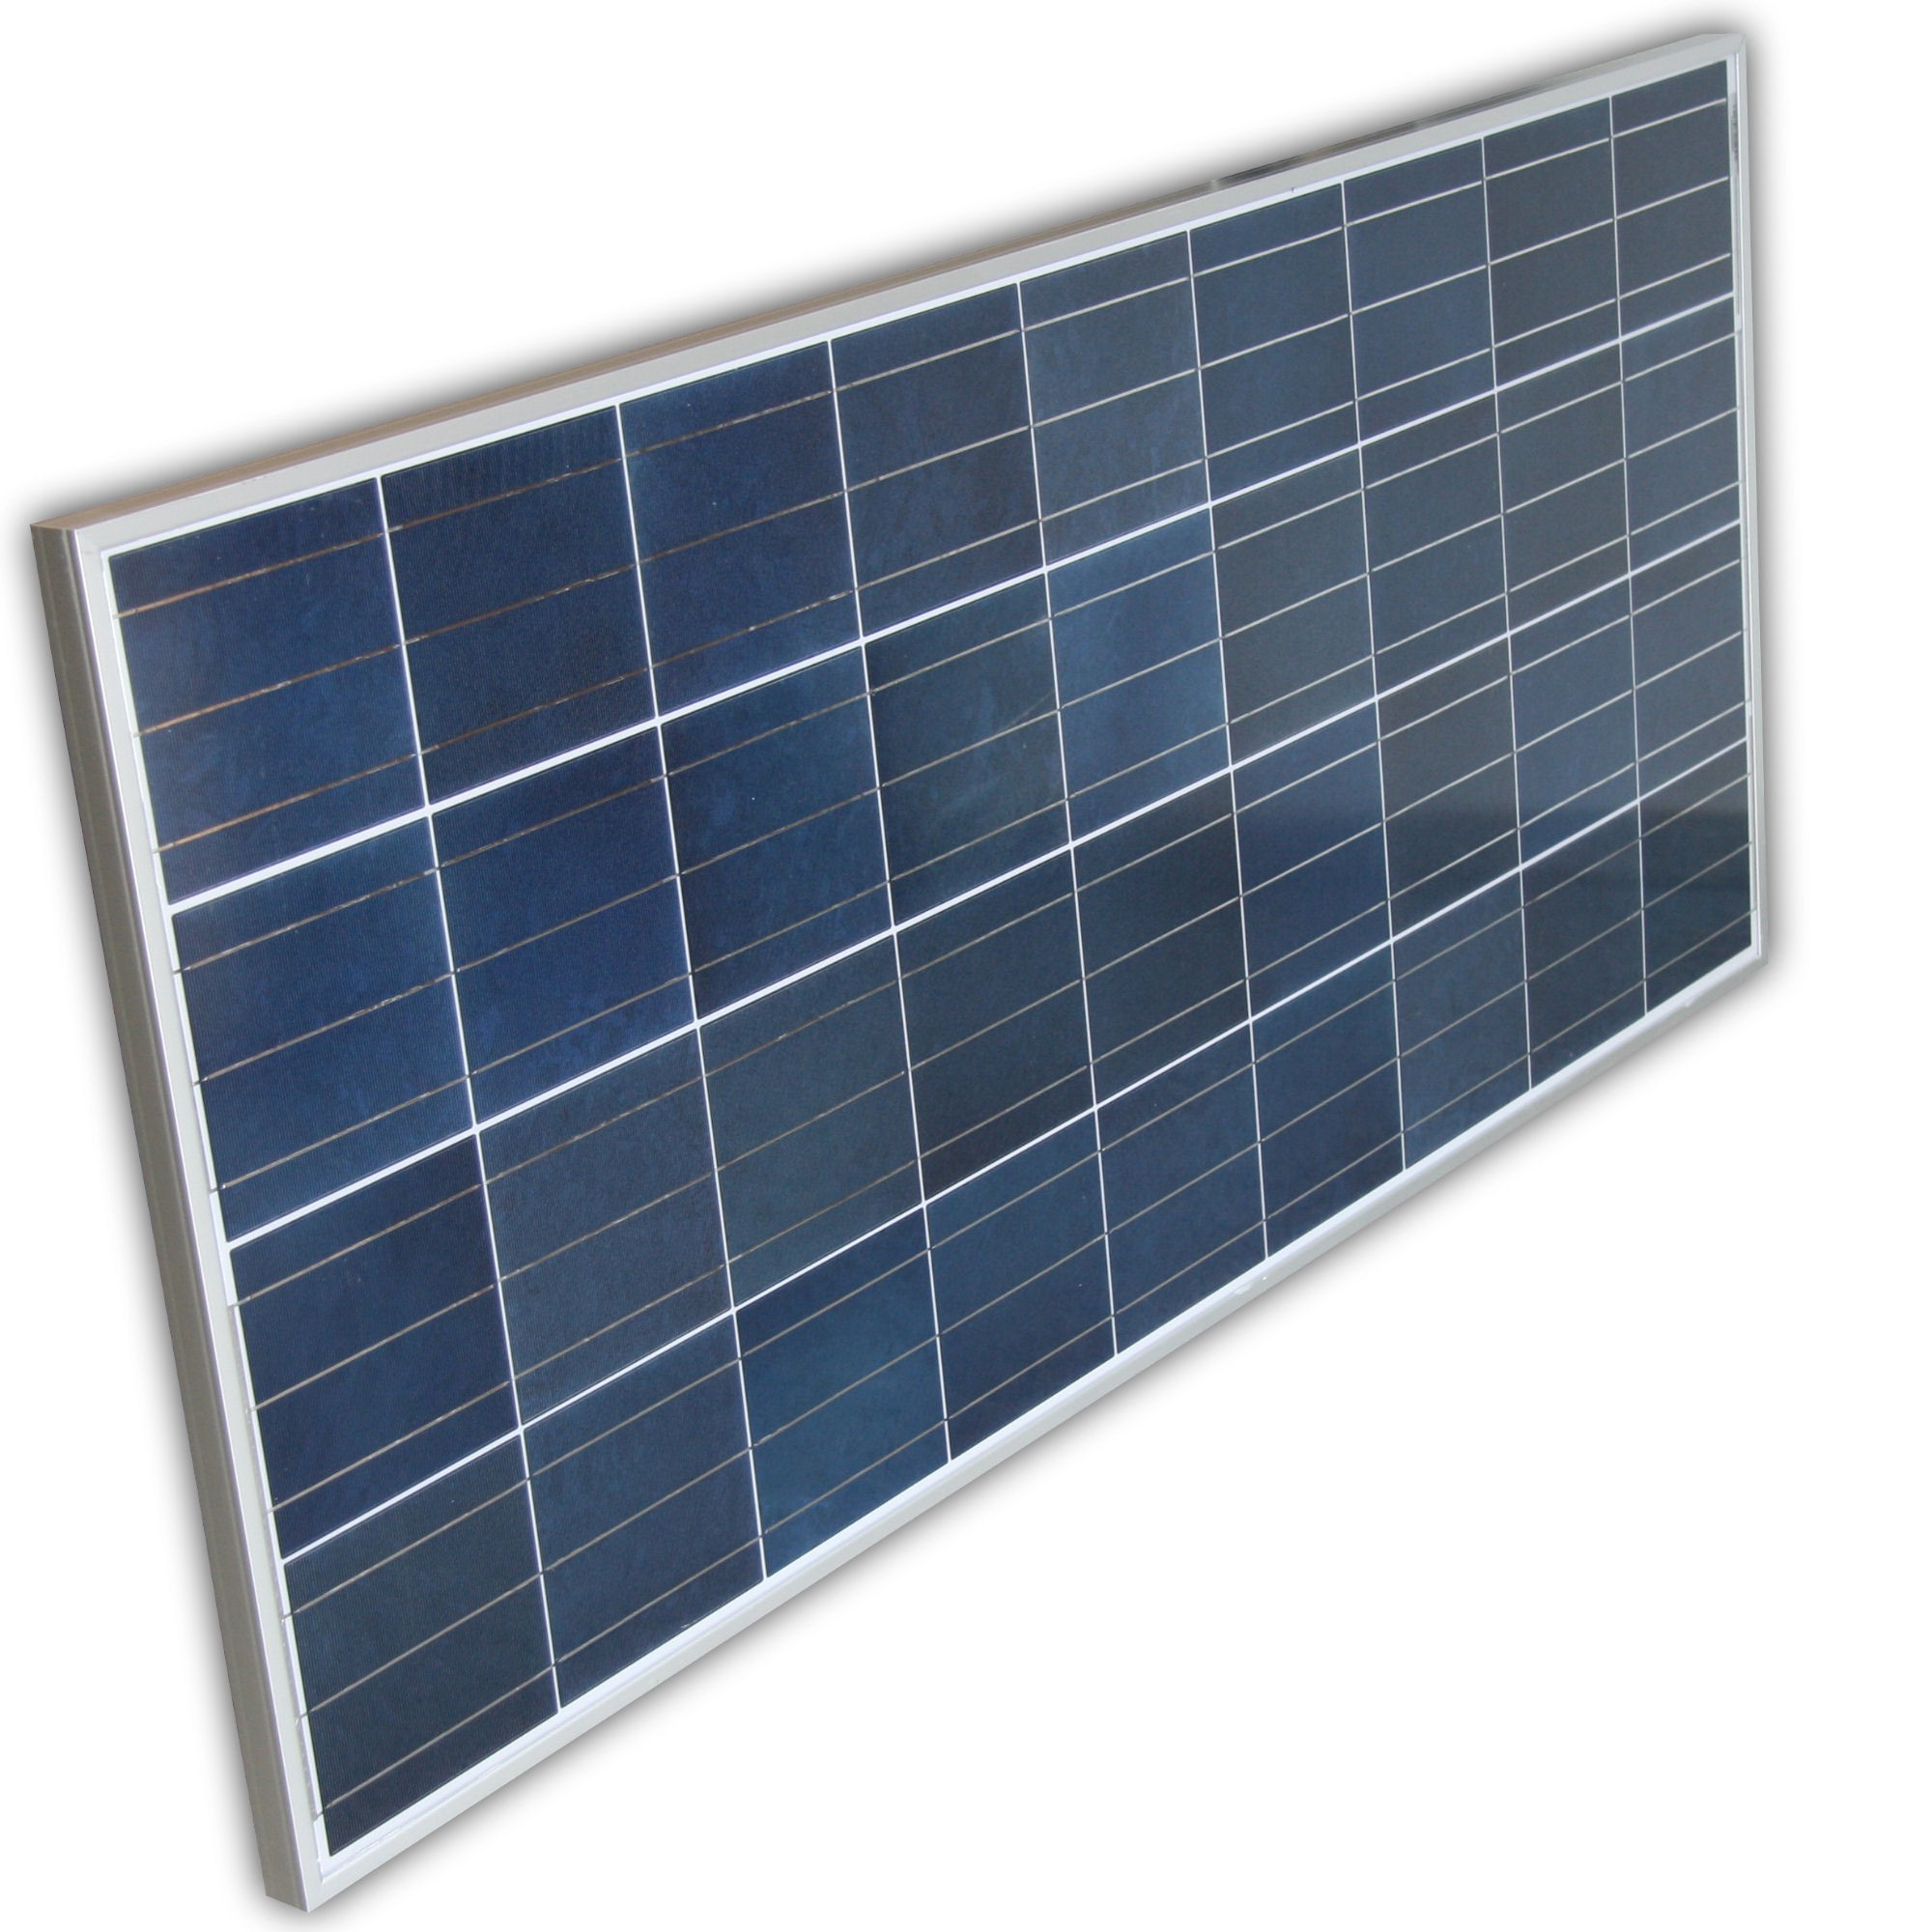 solarpanel 12v solarmodul solarzelle polykristallin 12volt 140watt wohnmobil ebay. Black Bedroom Furniture Sets. Home Design Ideas